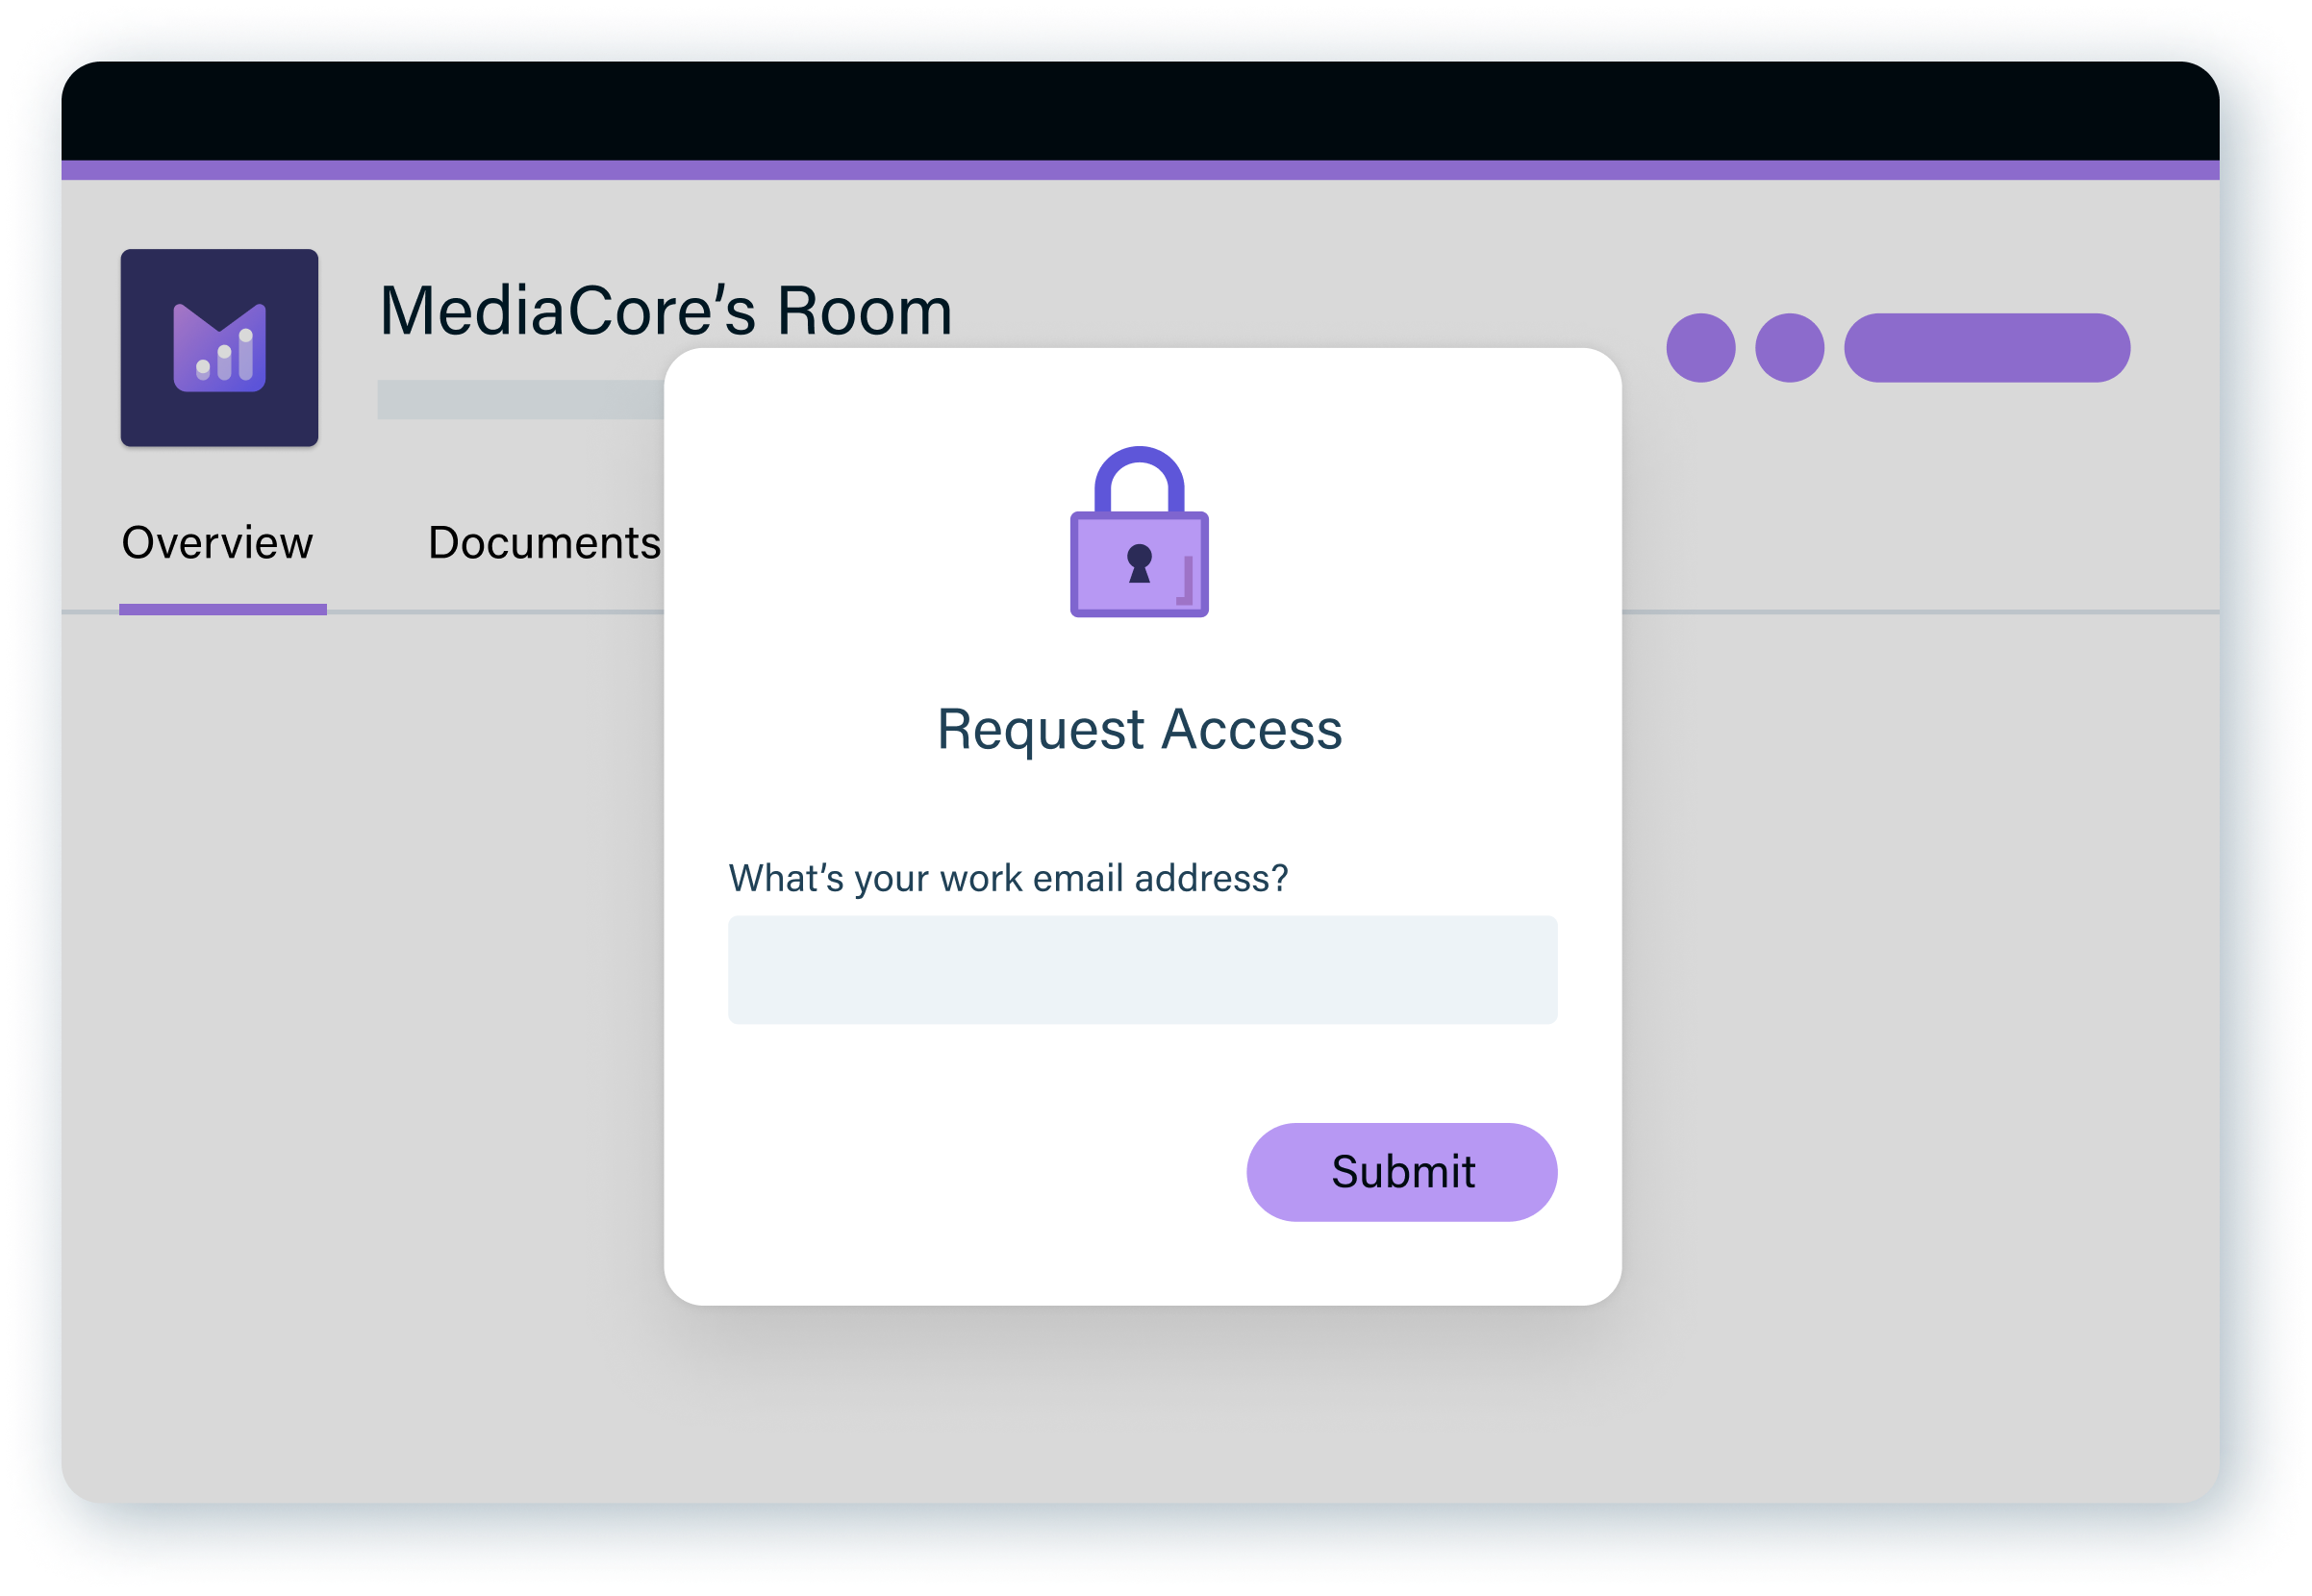 A customer requesting access to MediaCore's Room